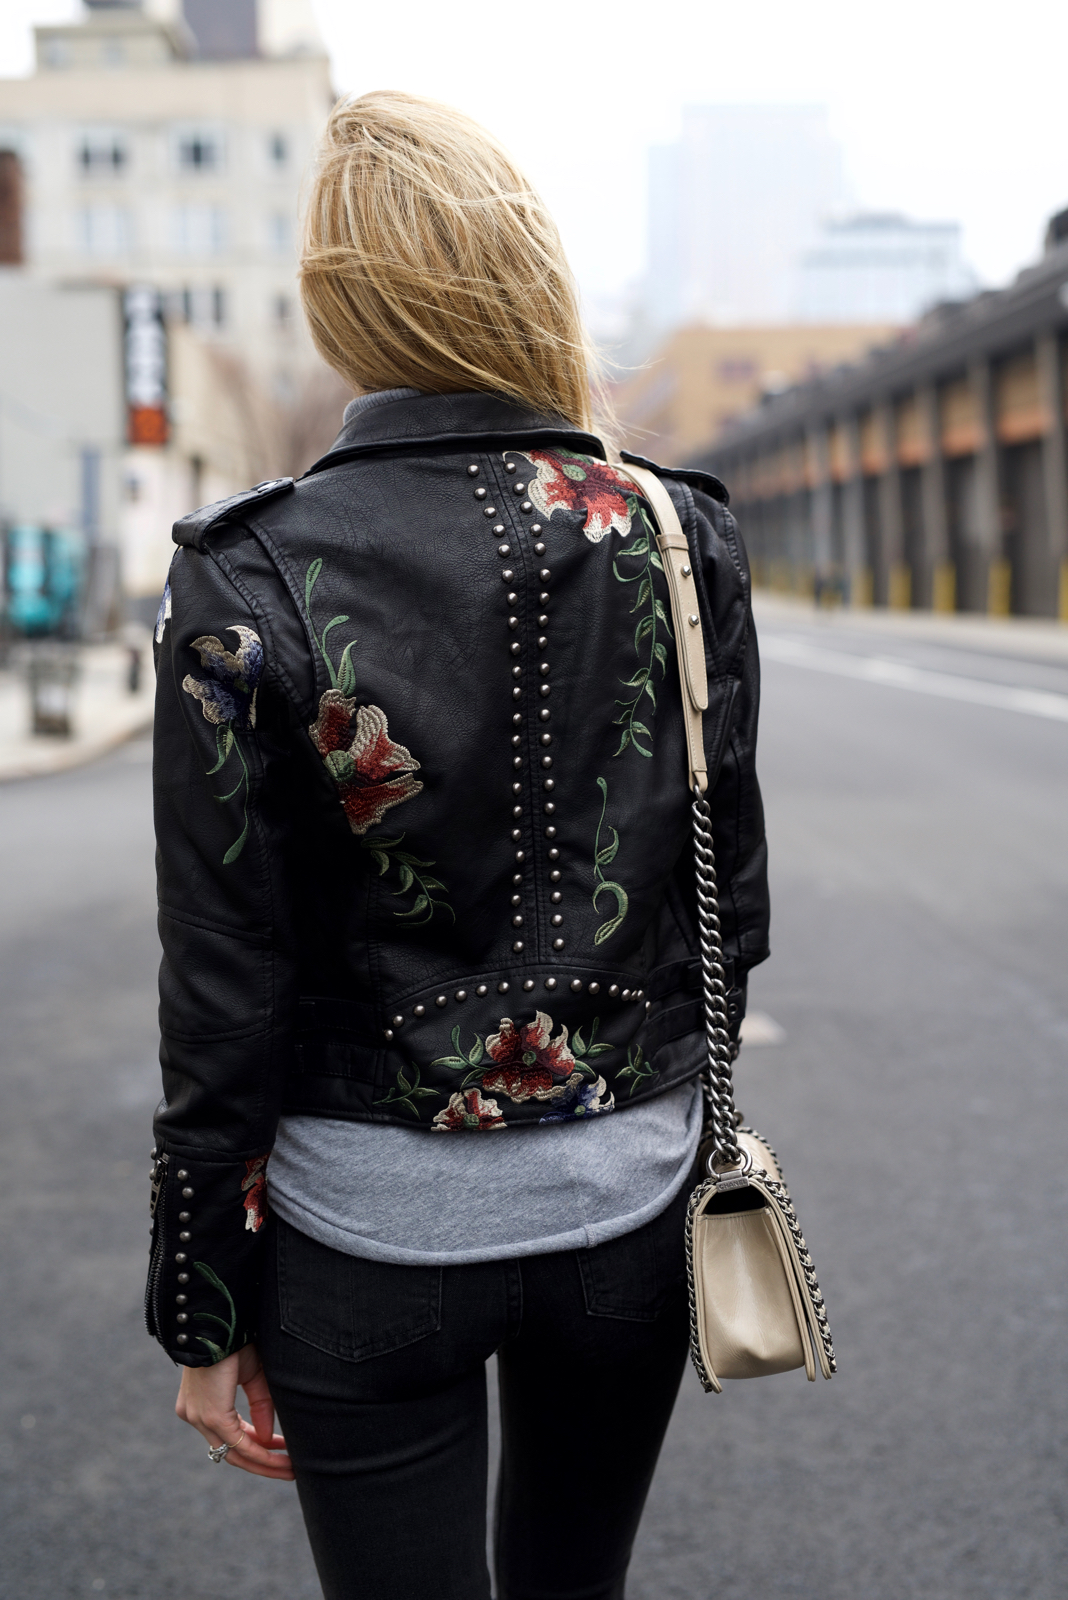 Floral Leather Jacket, Spring trends, Cool Girl outfit, Chanel boy bag, BlankNYC, Moto leather jacket, boots